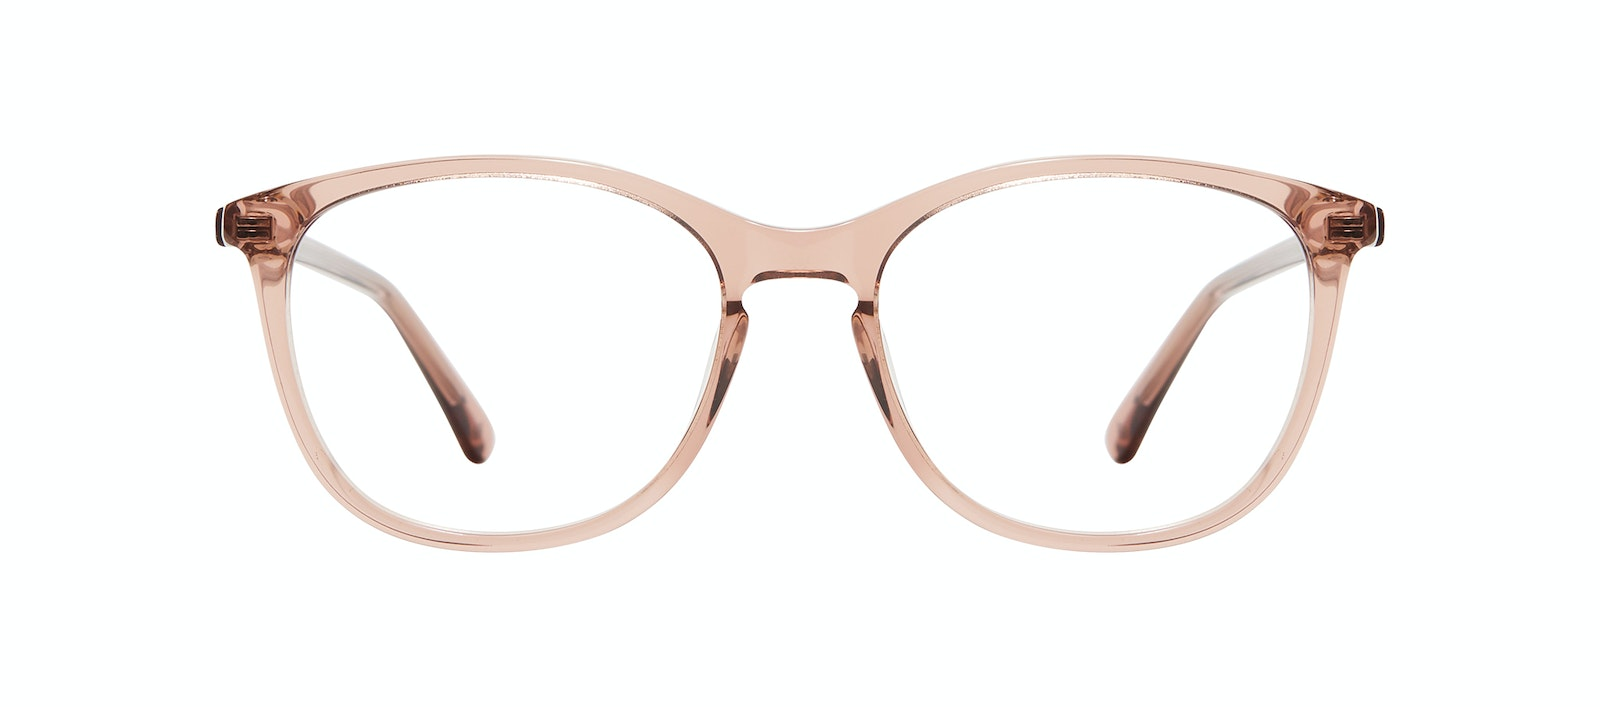 Affordable Fashion Glasses Rectangle Square Round Eyeglasses Women Nadine S Rose Front